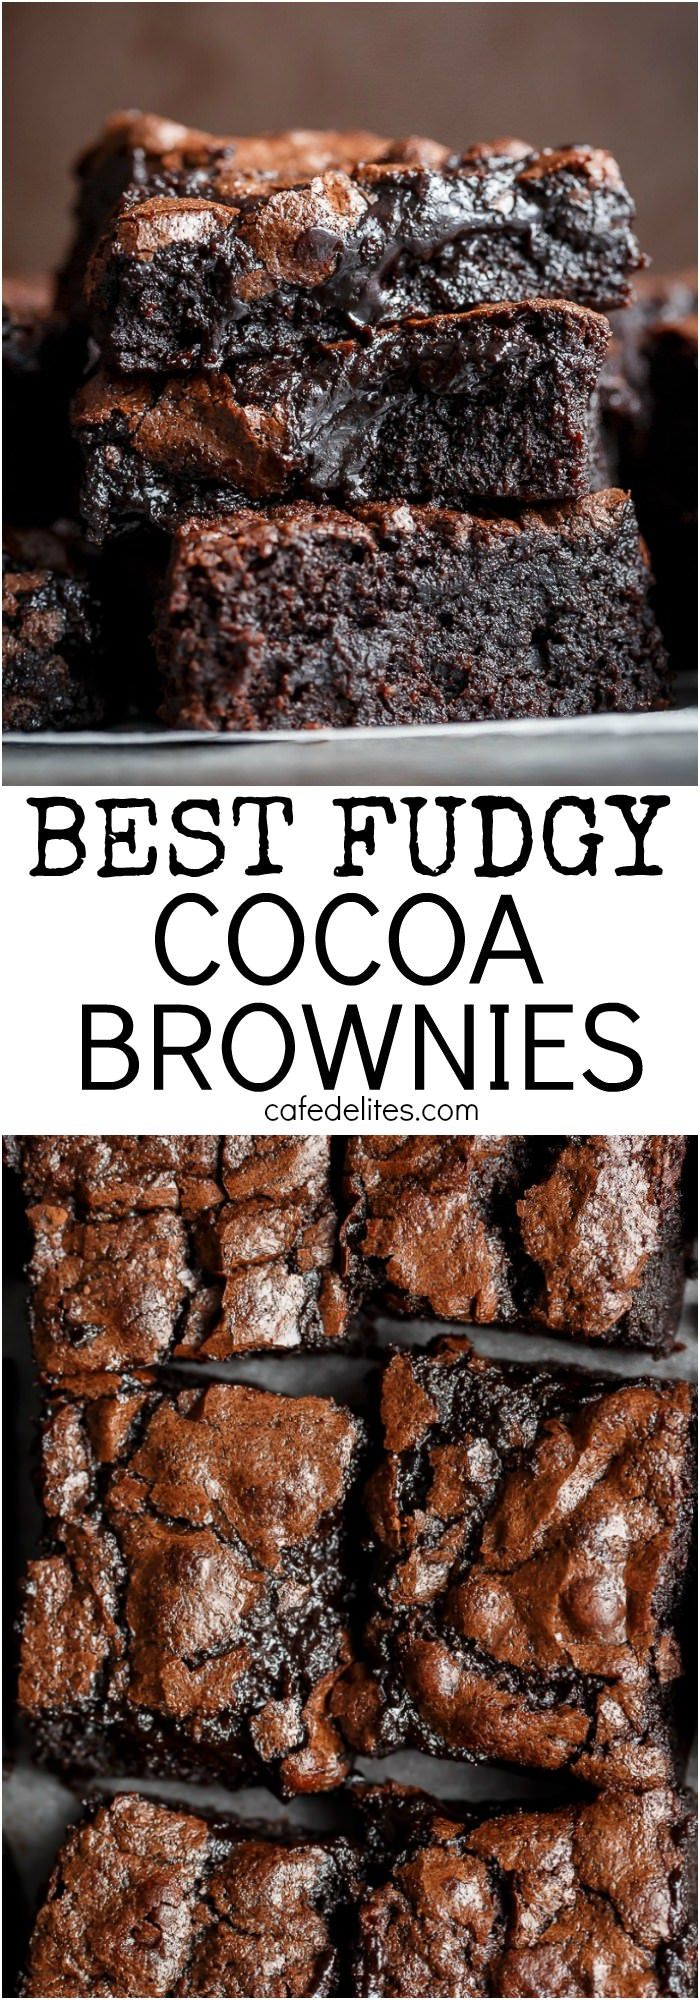 Super fudgy and at the same time crispy, this cocoa brownie recipe is best in the world.